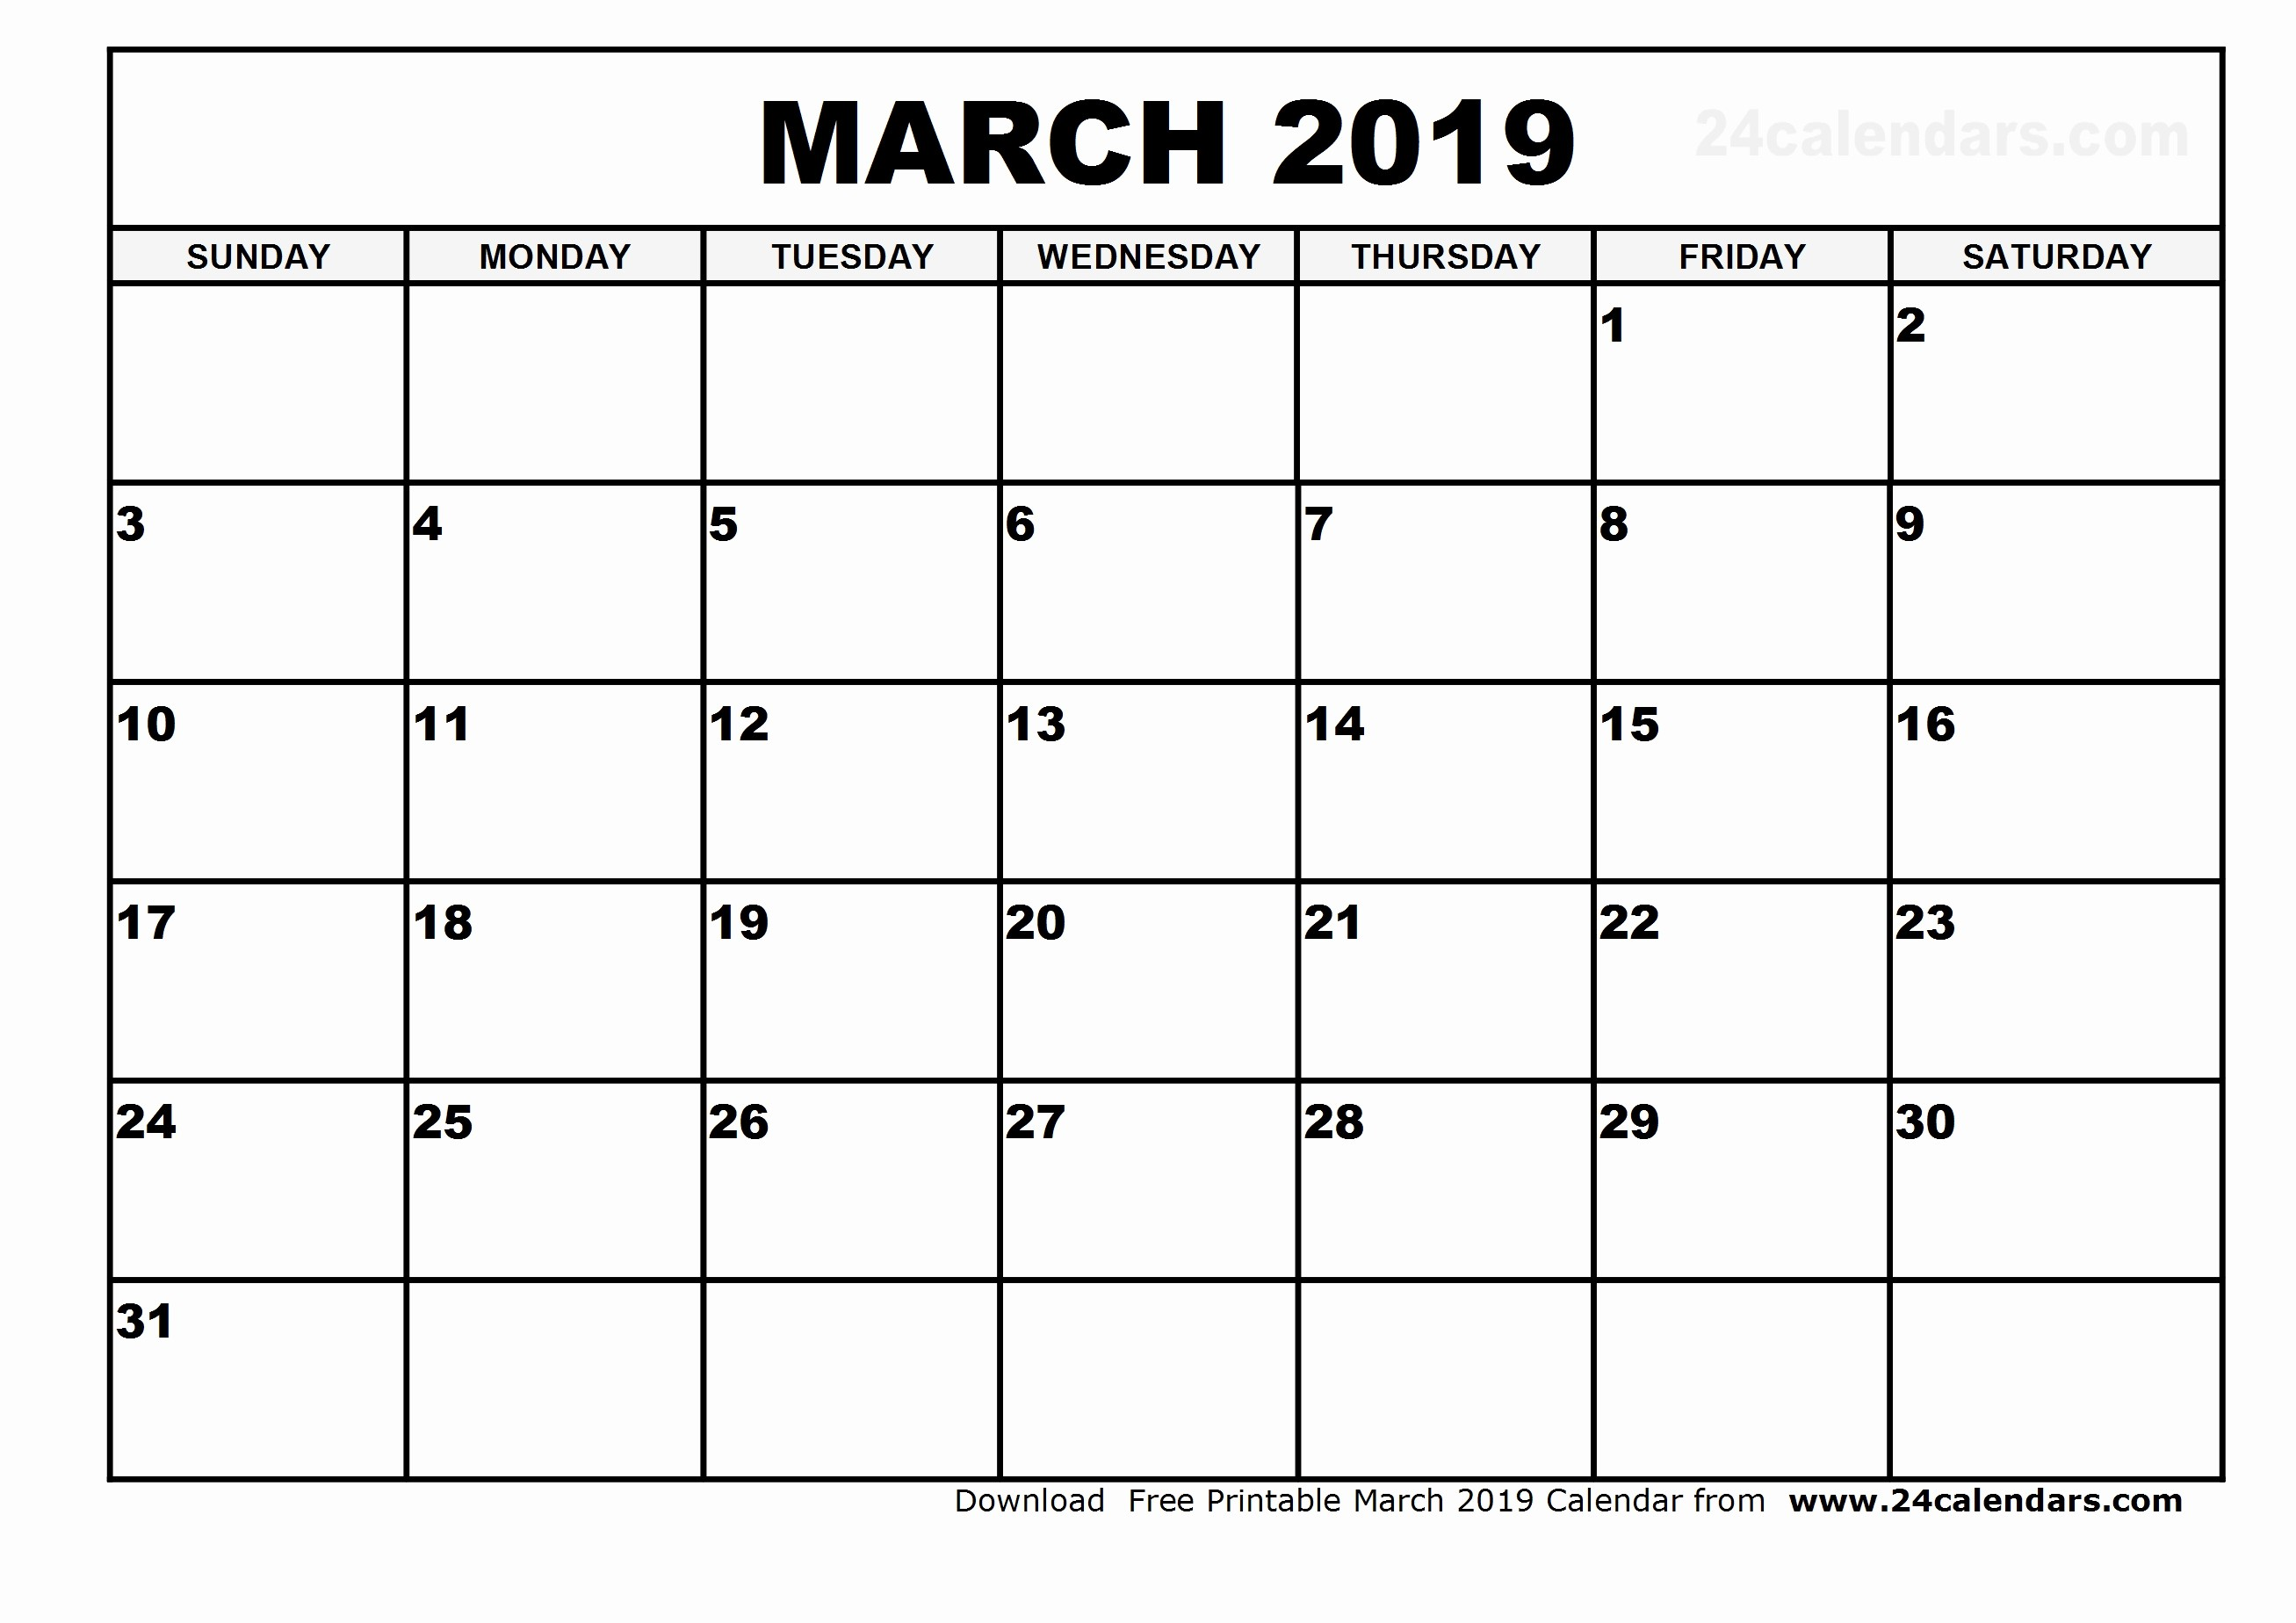 Printable Calendar 2018 and 2019 Fresh March 2019 Calendar Template